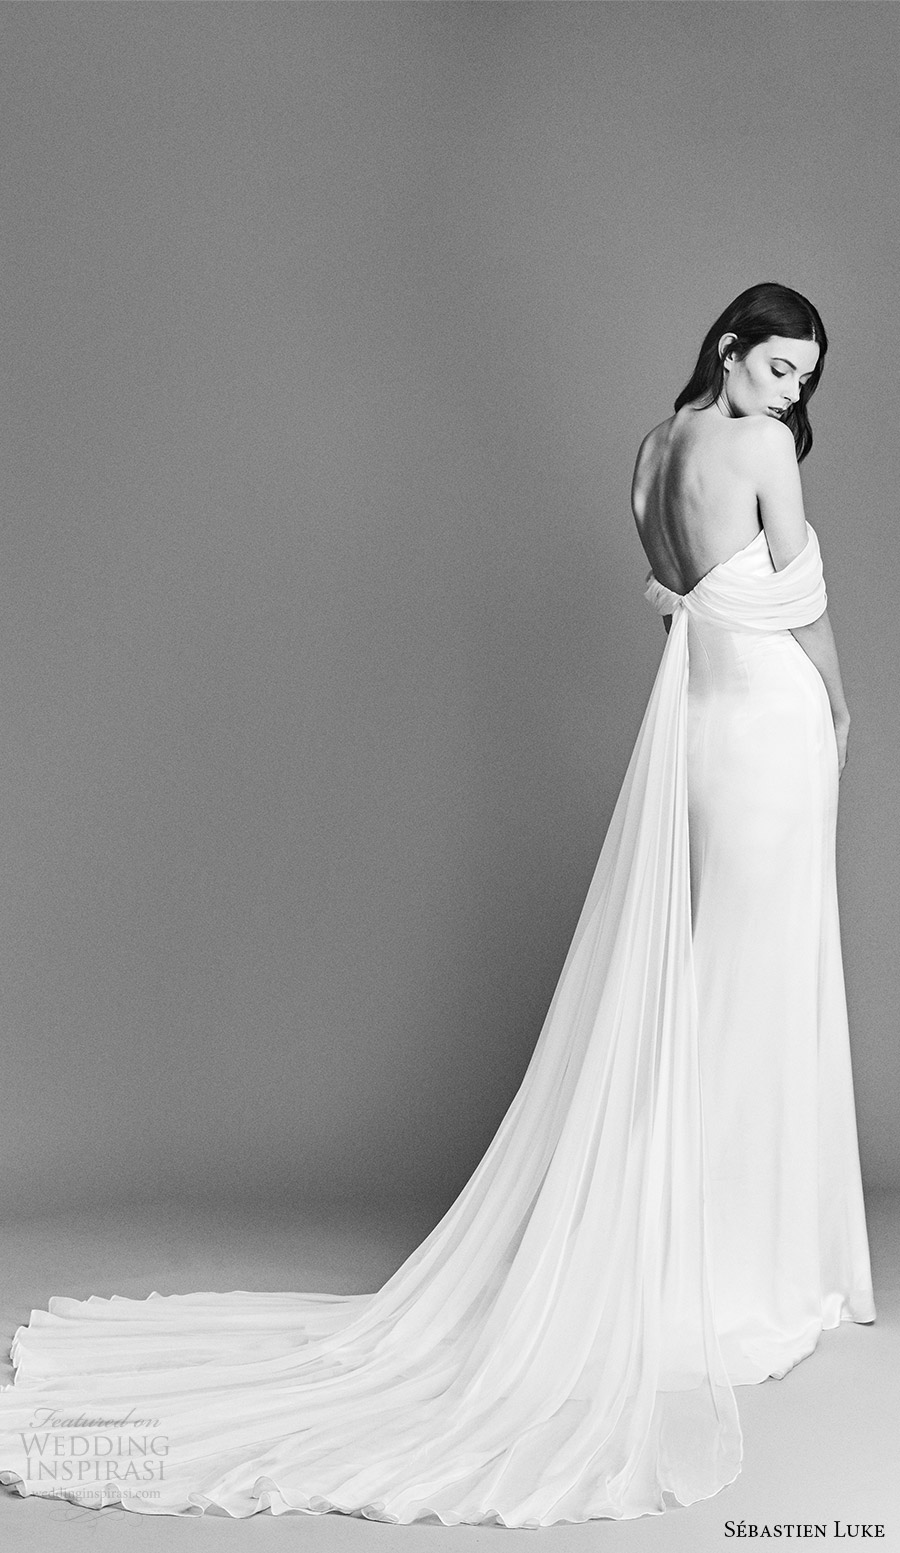 sebastien luke spring 2018 bridal off shoulder draped sleeves clean sheath wedding dress (18b11) bv low long train chic modern